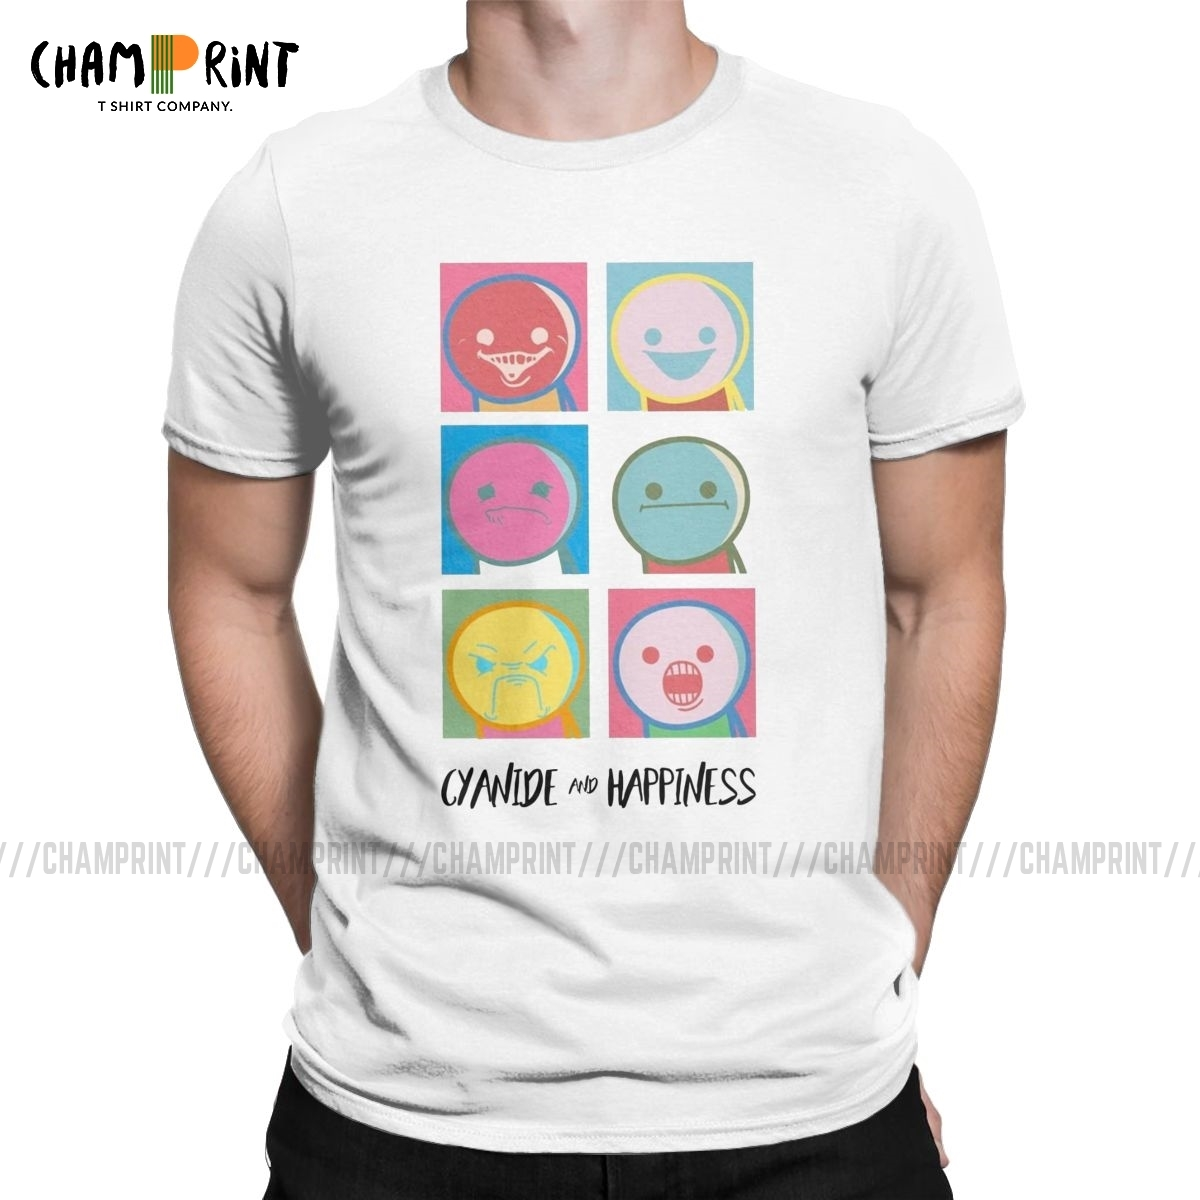 Men's The Cyanide & Happiness Show T Shirts 100% Cotton Tops Hipster Short Sleeve Crew Neck Tee Shirt Graphic T-Shirts image